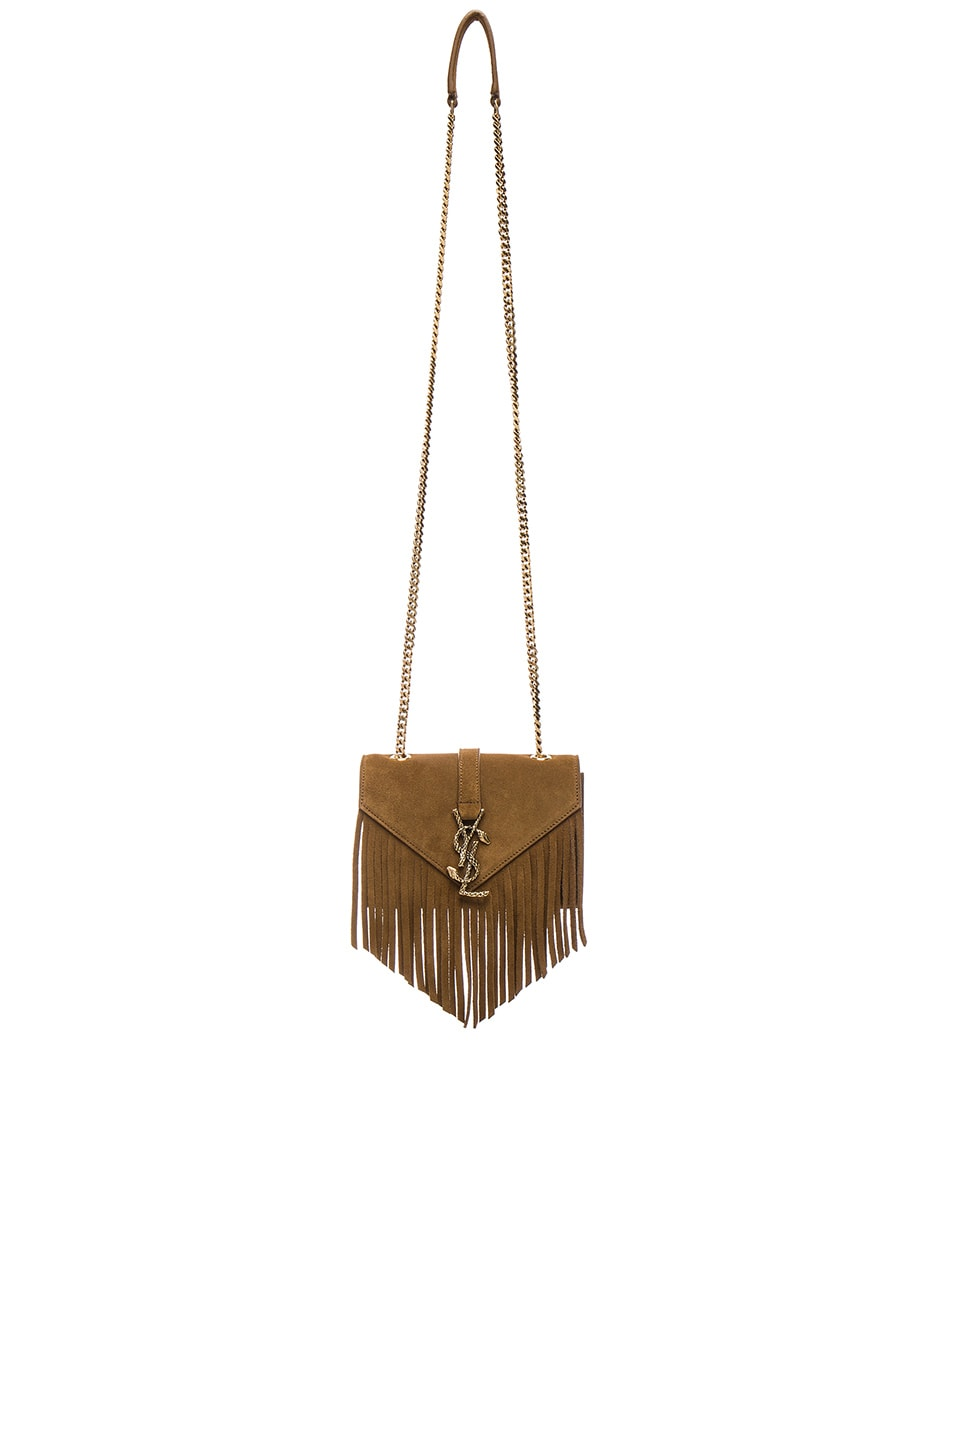 Image 1 of Saint Laurent Small Suede Serpent Chain Bag in Light Ocre